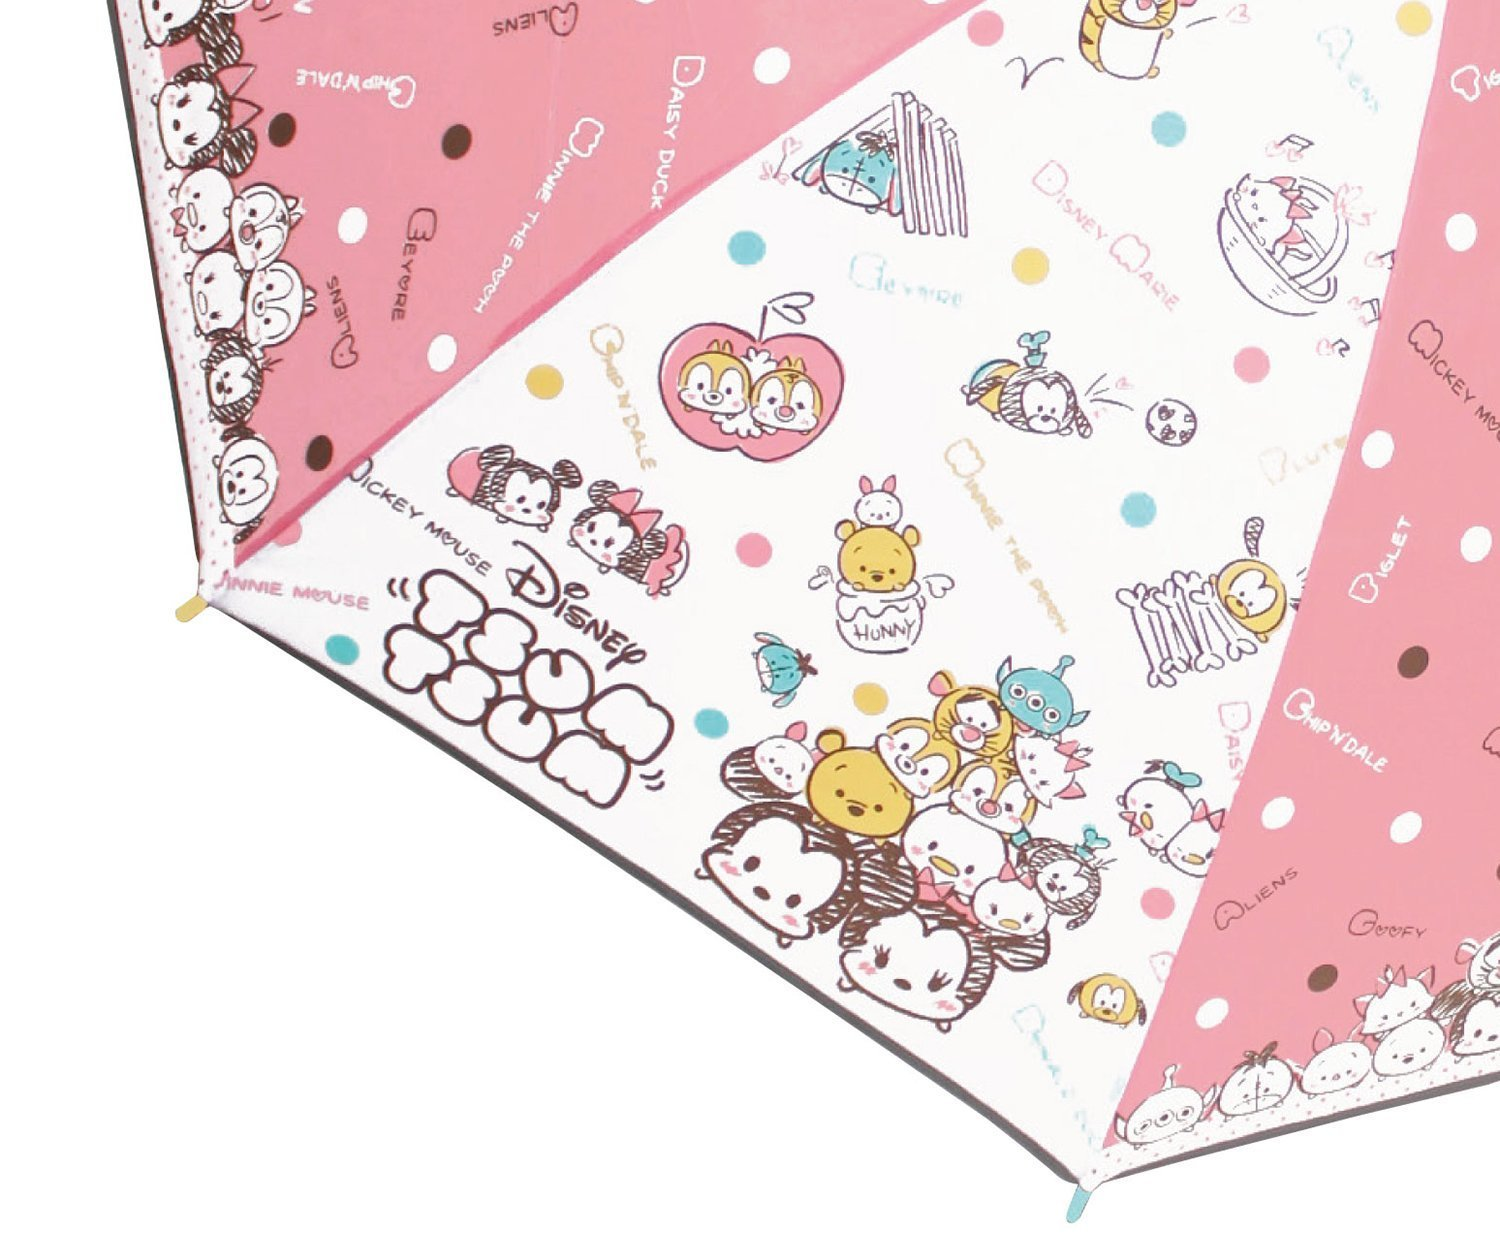 Amazon.com: Disney Tsum Tsum Umbrella Cute From Japan 55cm 35056: Garden & Outdoor